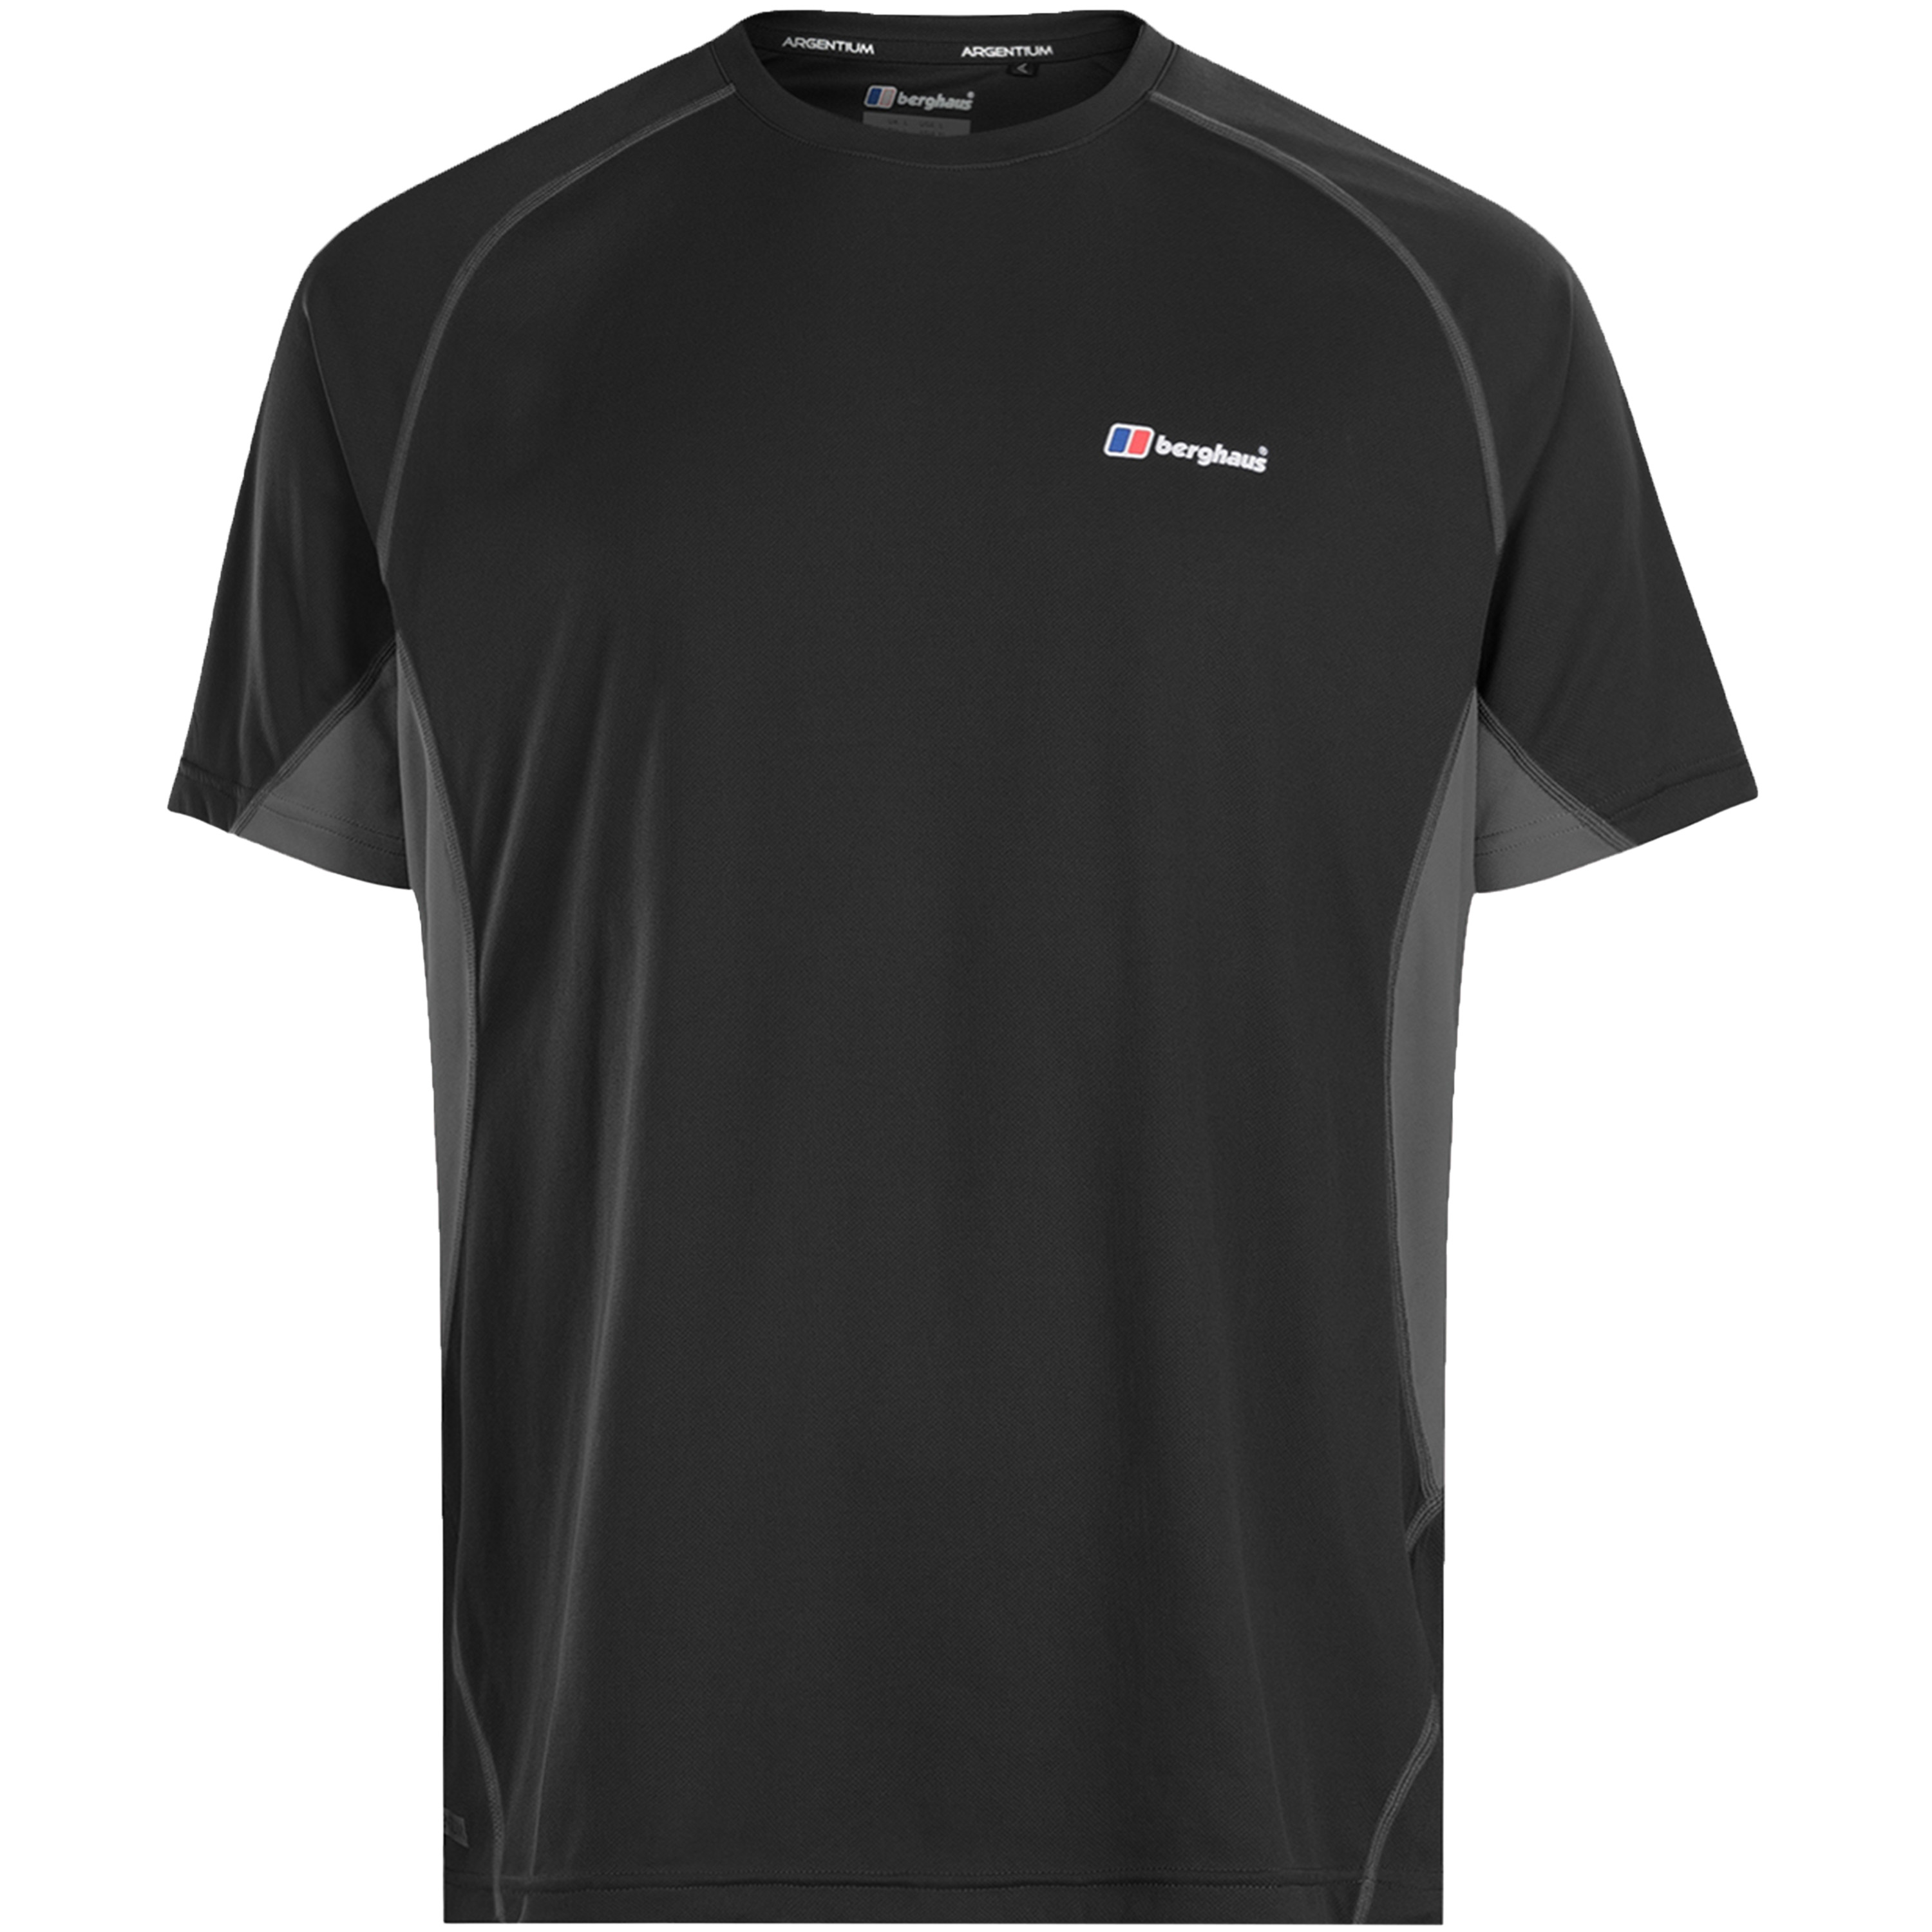 Berghaus T-Shirt Crew Neck Technical carbon